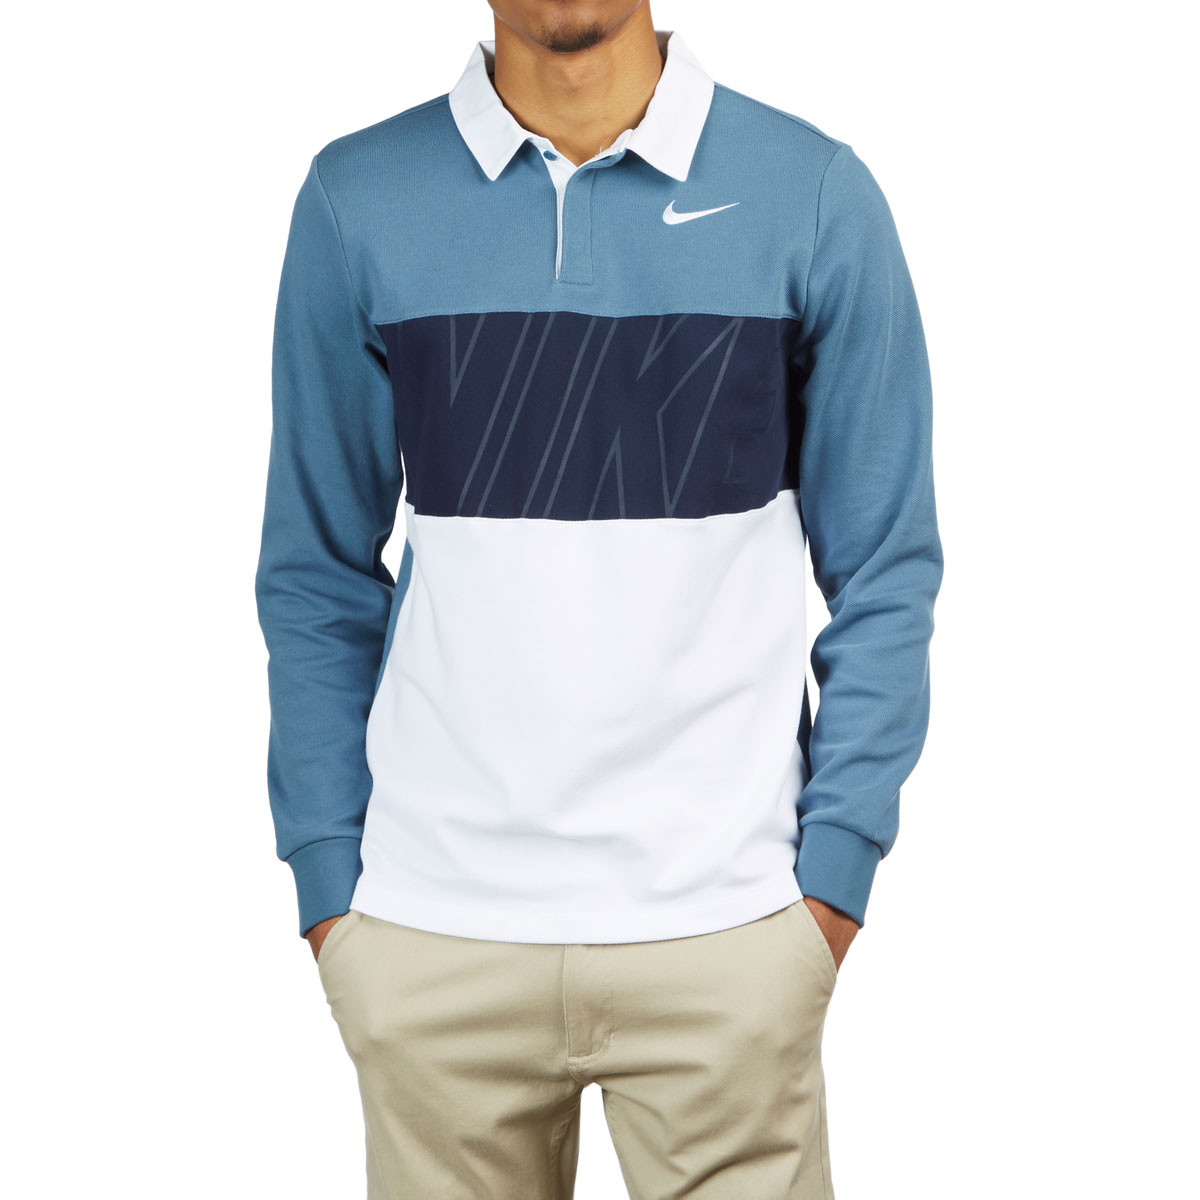 Nike SB Dri Polo Long Sleeve Shirt